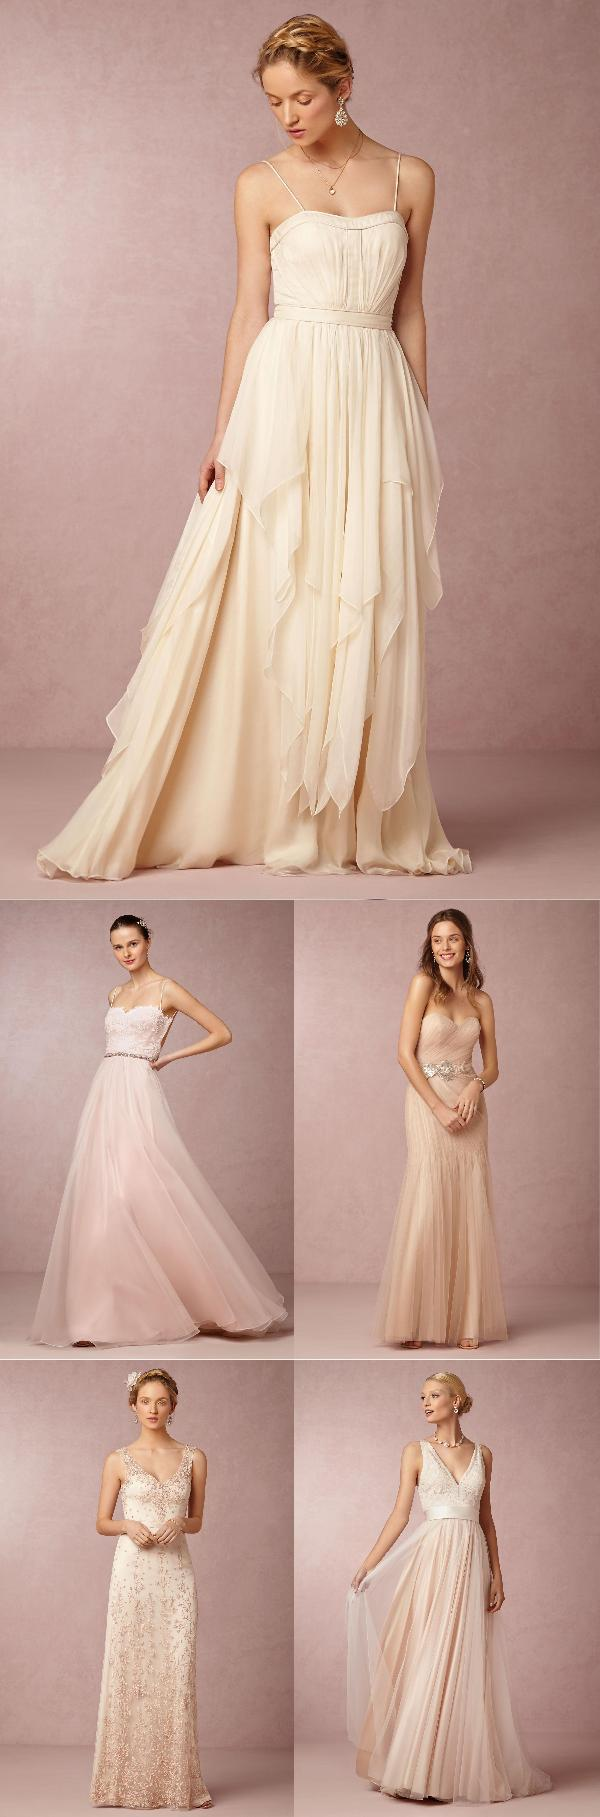 5 Enchanting Wedding Dresses in Shades of Pink | Boda de ensueño ...